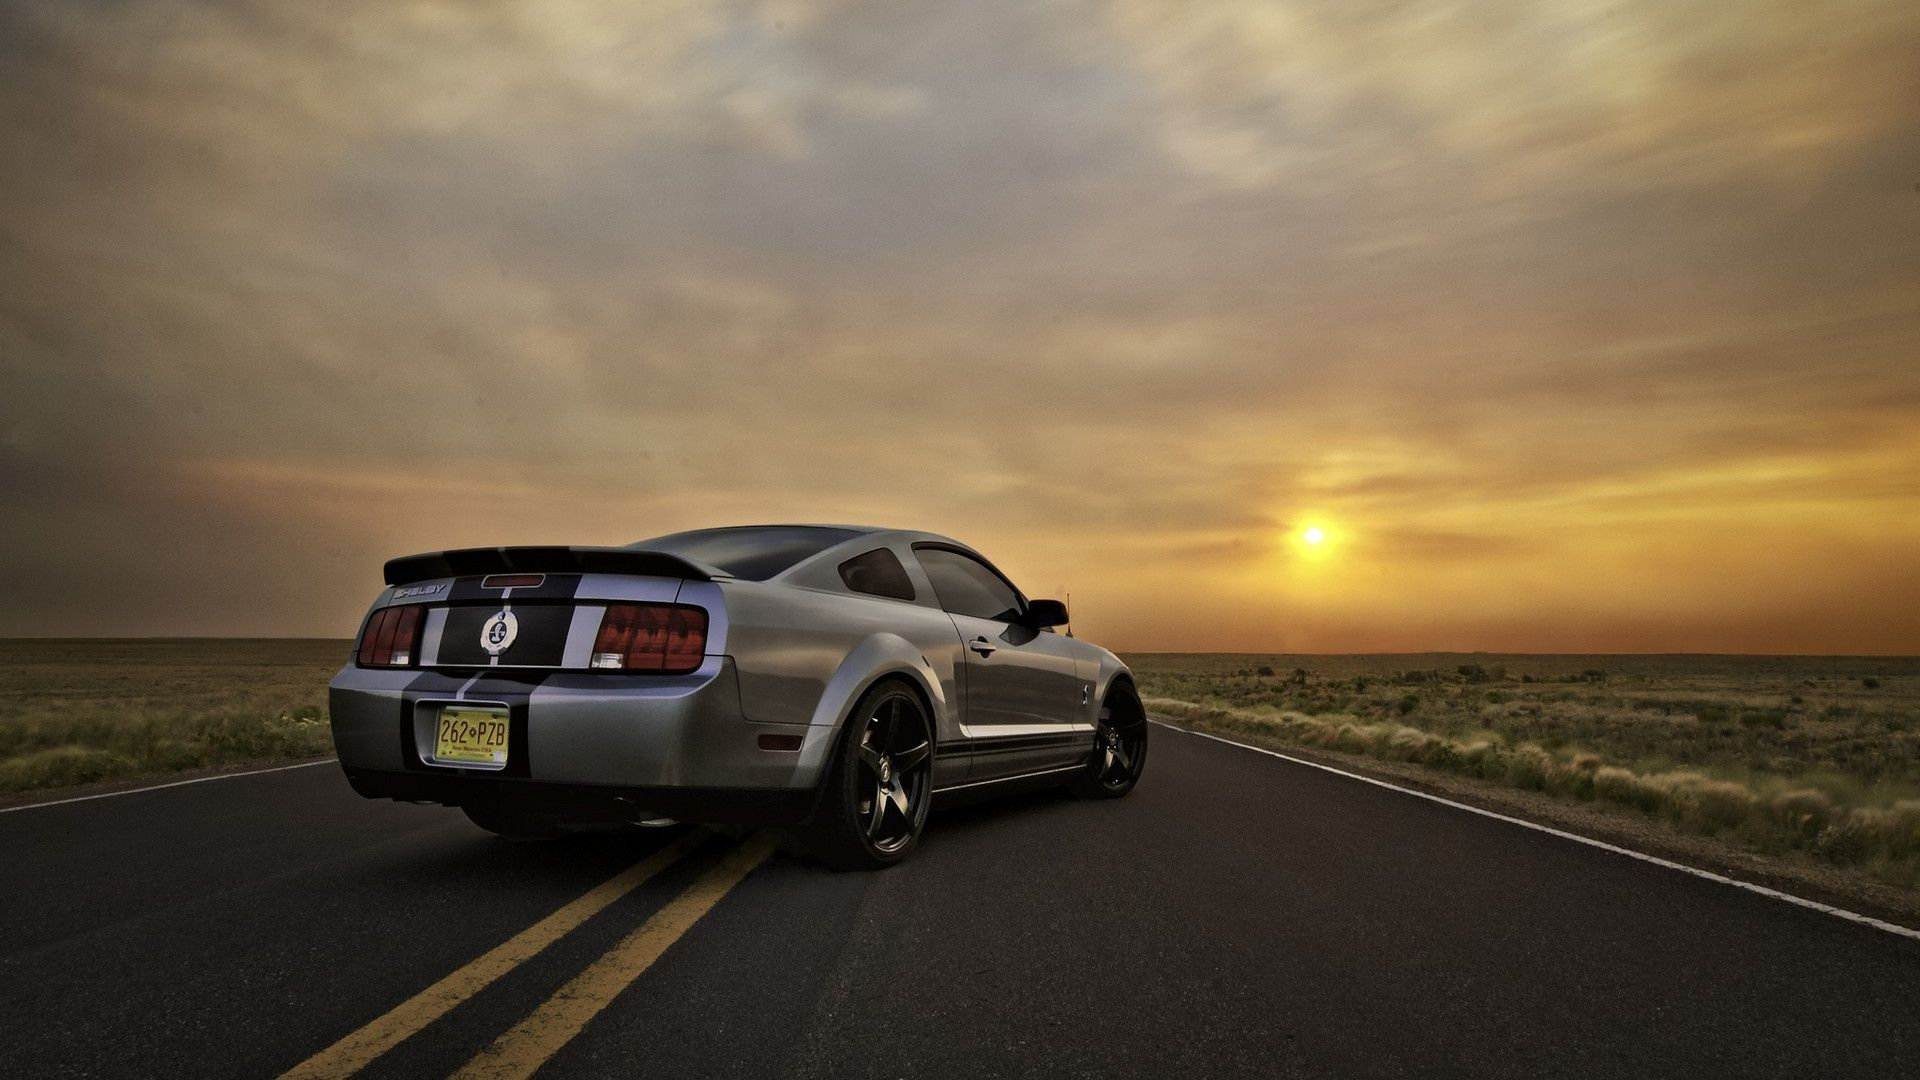 Silver ford mustang sunset Wallpaper